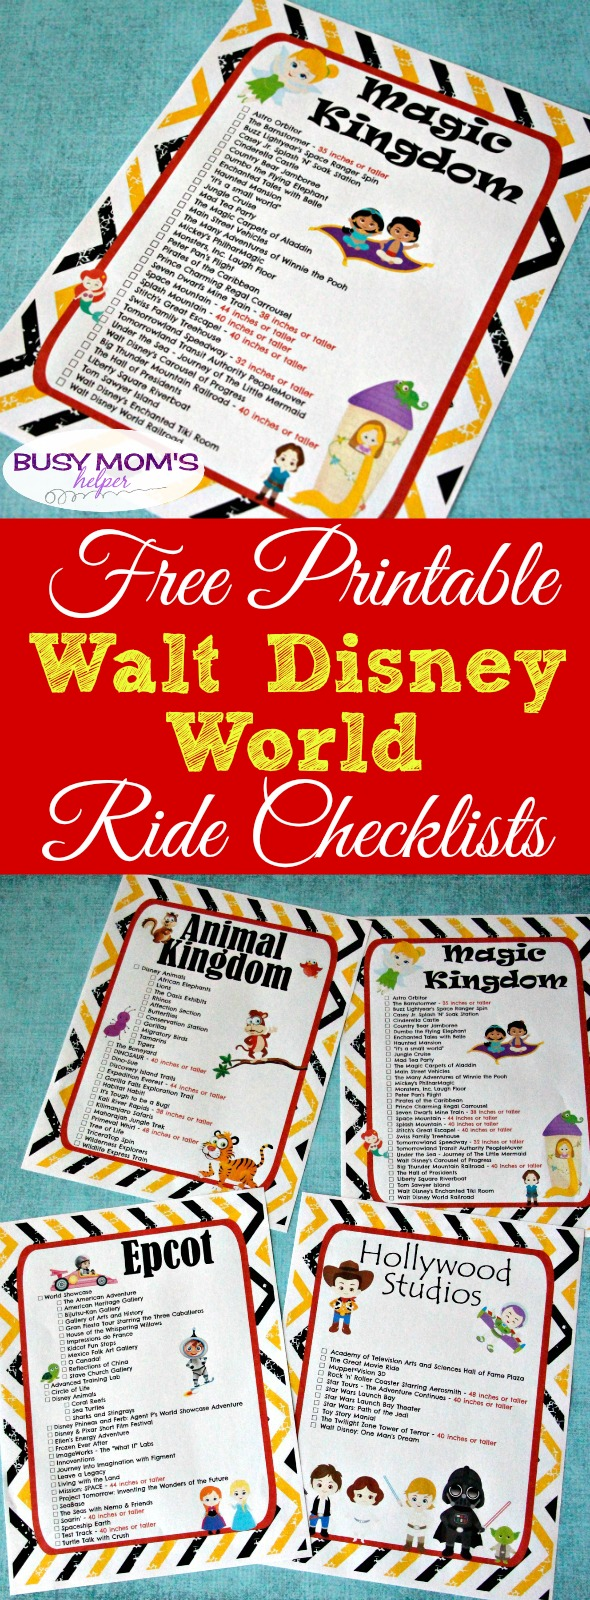 picture about You Re Going to Disney World Printable named No cost Printable Walt Disney Worldwide Experience Checklists - Active Mothers